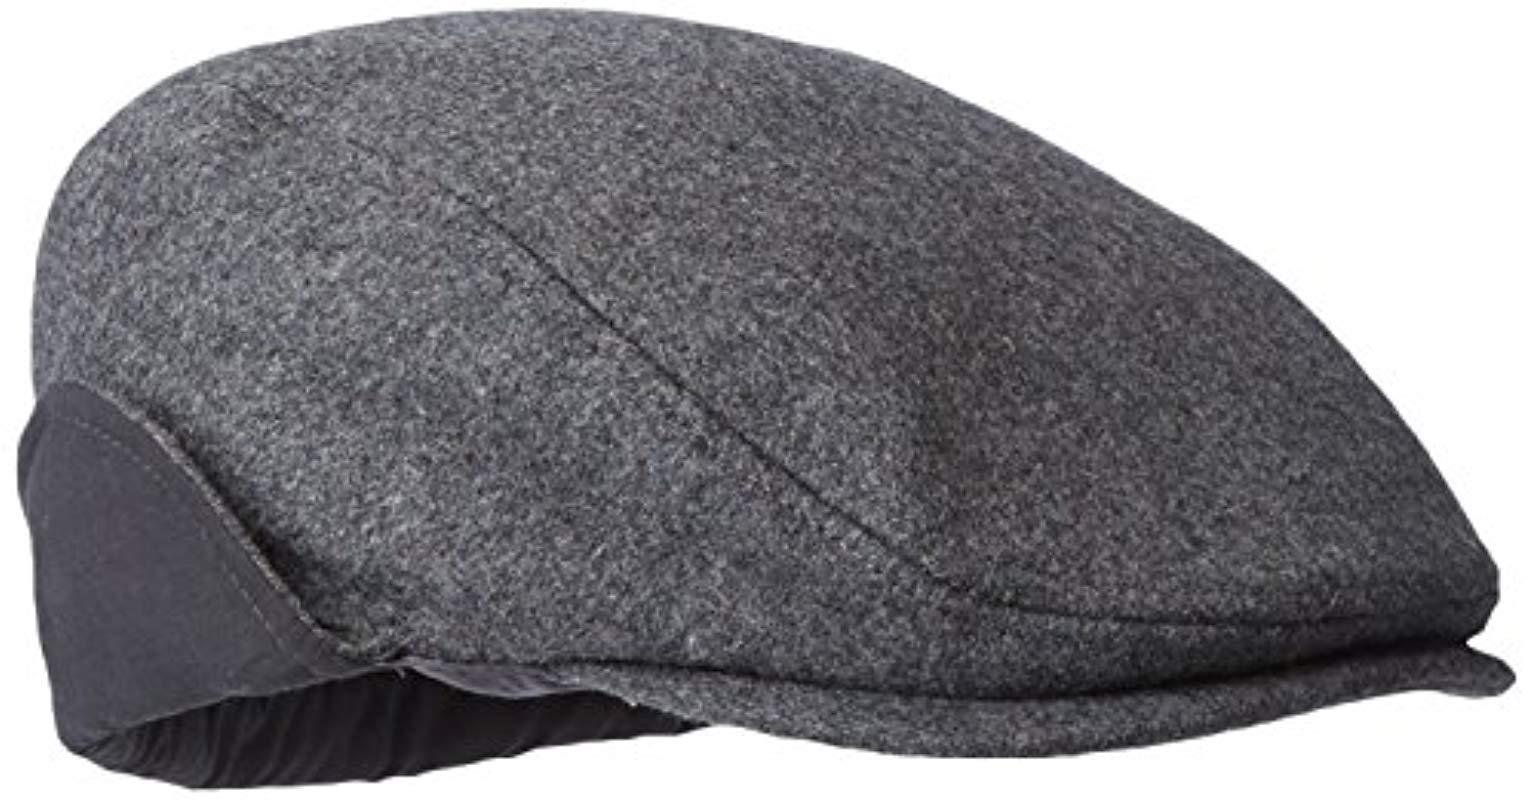 9bde535bd904e Dockers - Gray Solid Melton Hat With Fold-down Ear Flaps for Men - Lyst.  View fullscreen